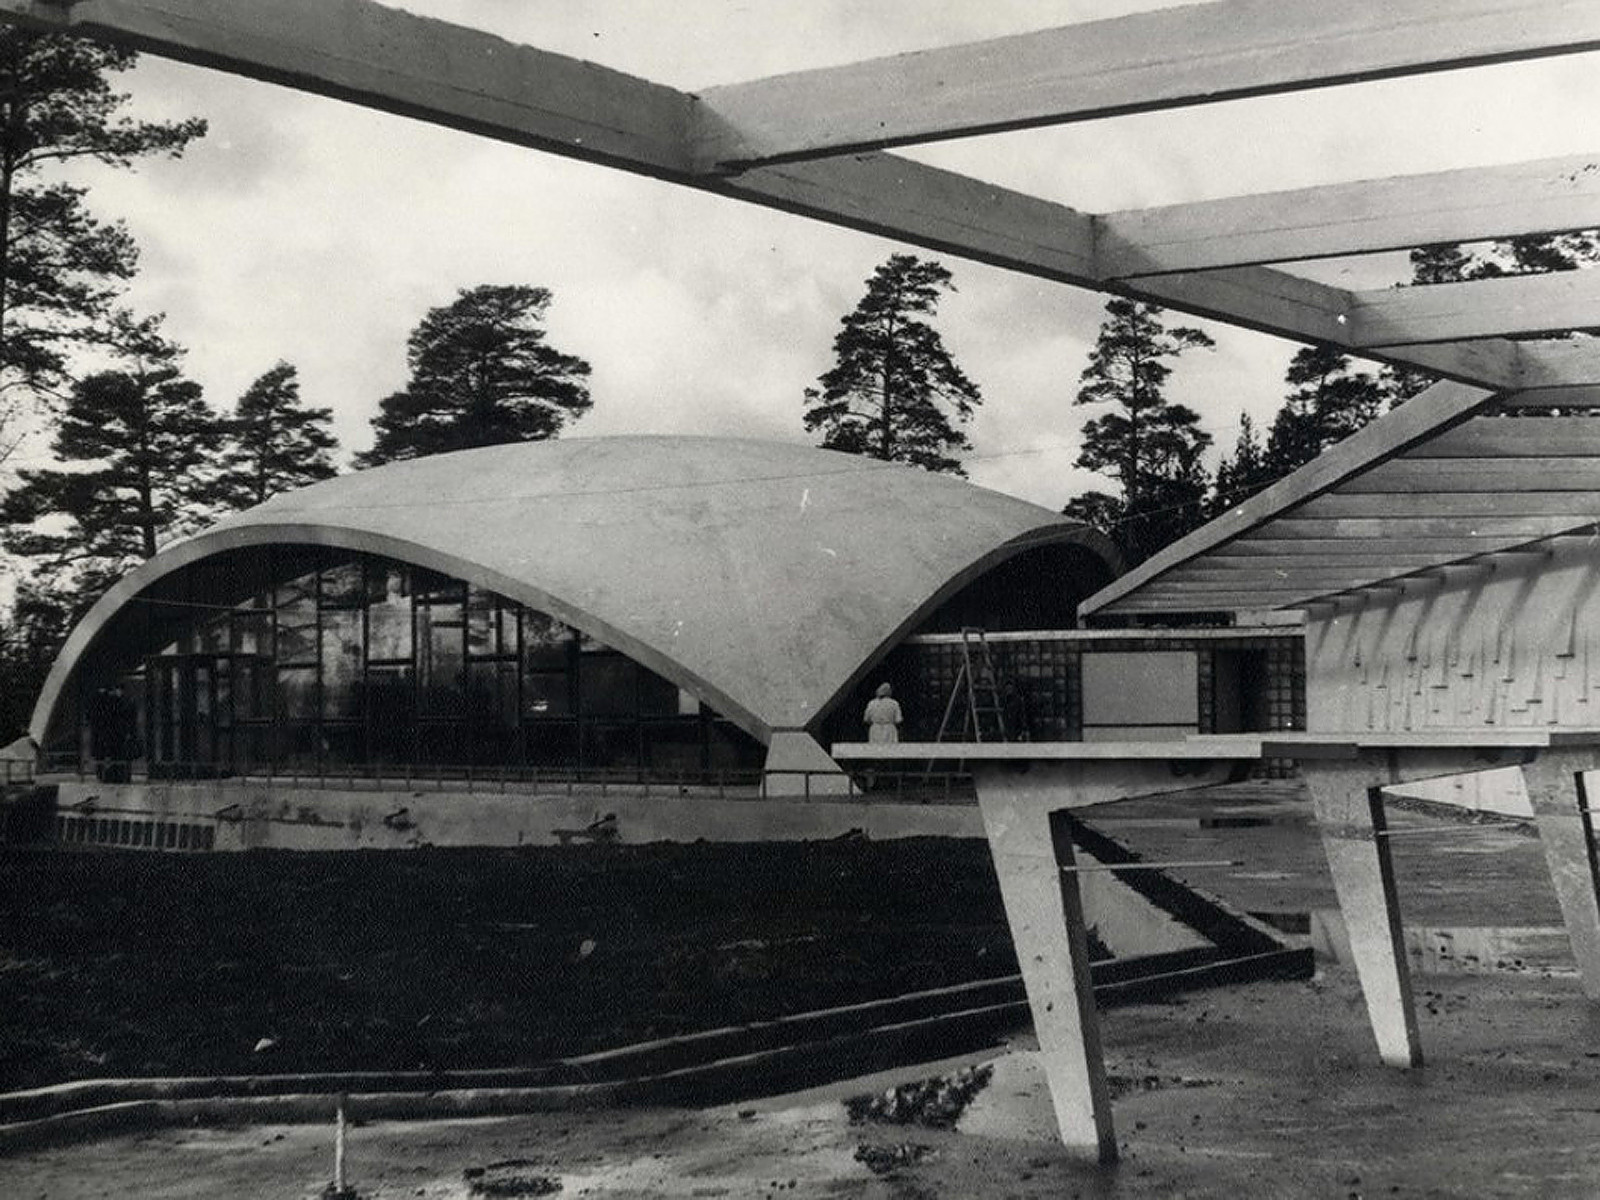 "Venice Biennale 2014: NRJA to Establish First-Ever Database of Latvian Post-War Modernist Architecture, Restaurant ""Sēnīte"" (1967); Vidzeme highway 37.km / Linards Skuja, Andris Bite, G. Grīnbergs, R. Ozoliņš - Courtesy of The Museum of Architecture of Latvia"